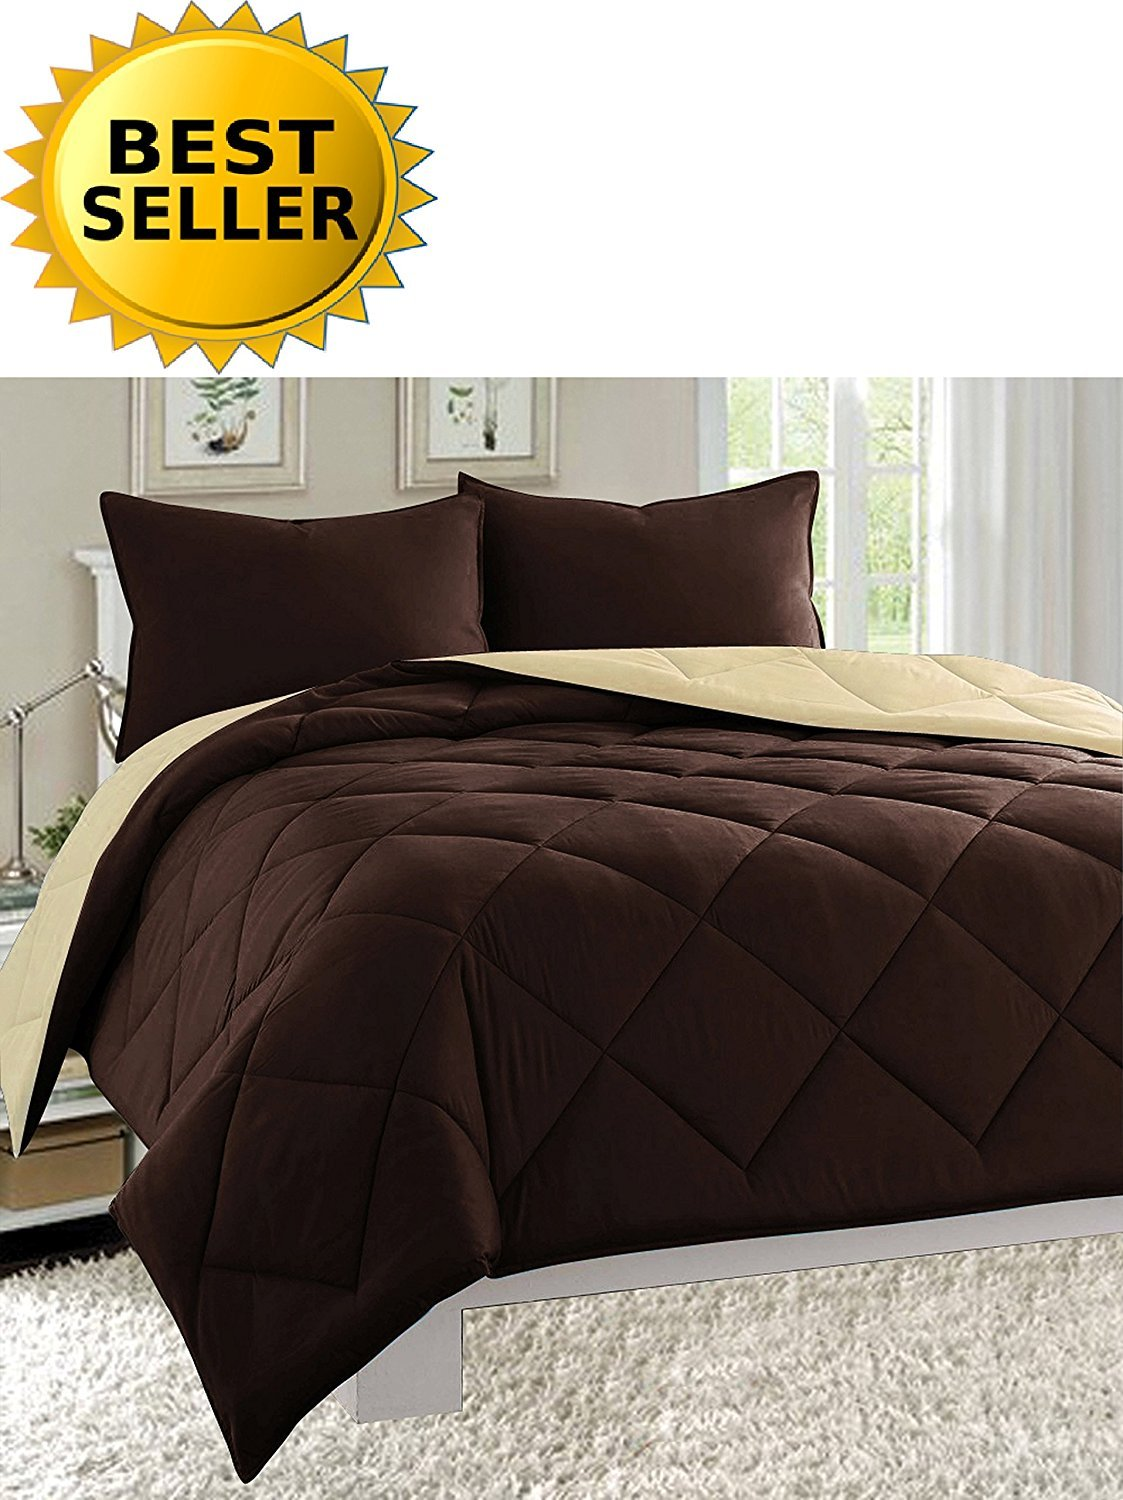 Celine Linen Luxury All Season Light Weight Down Alternative Reversible  2 Piece Comforter Set Chocolate